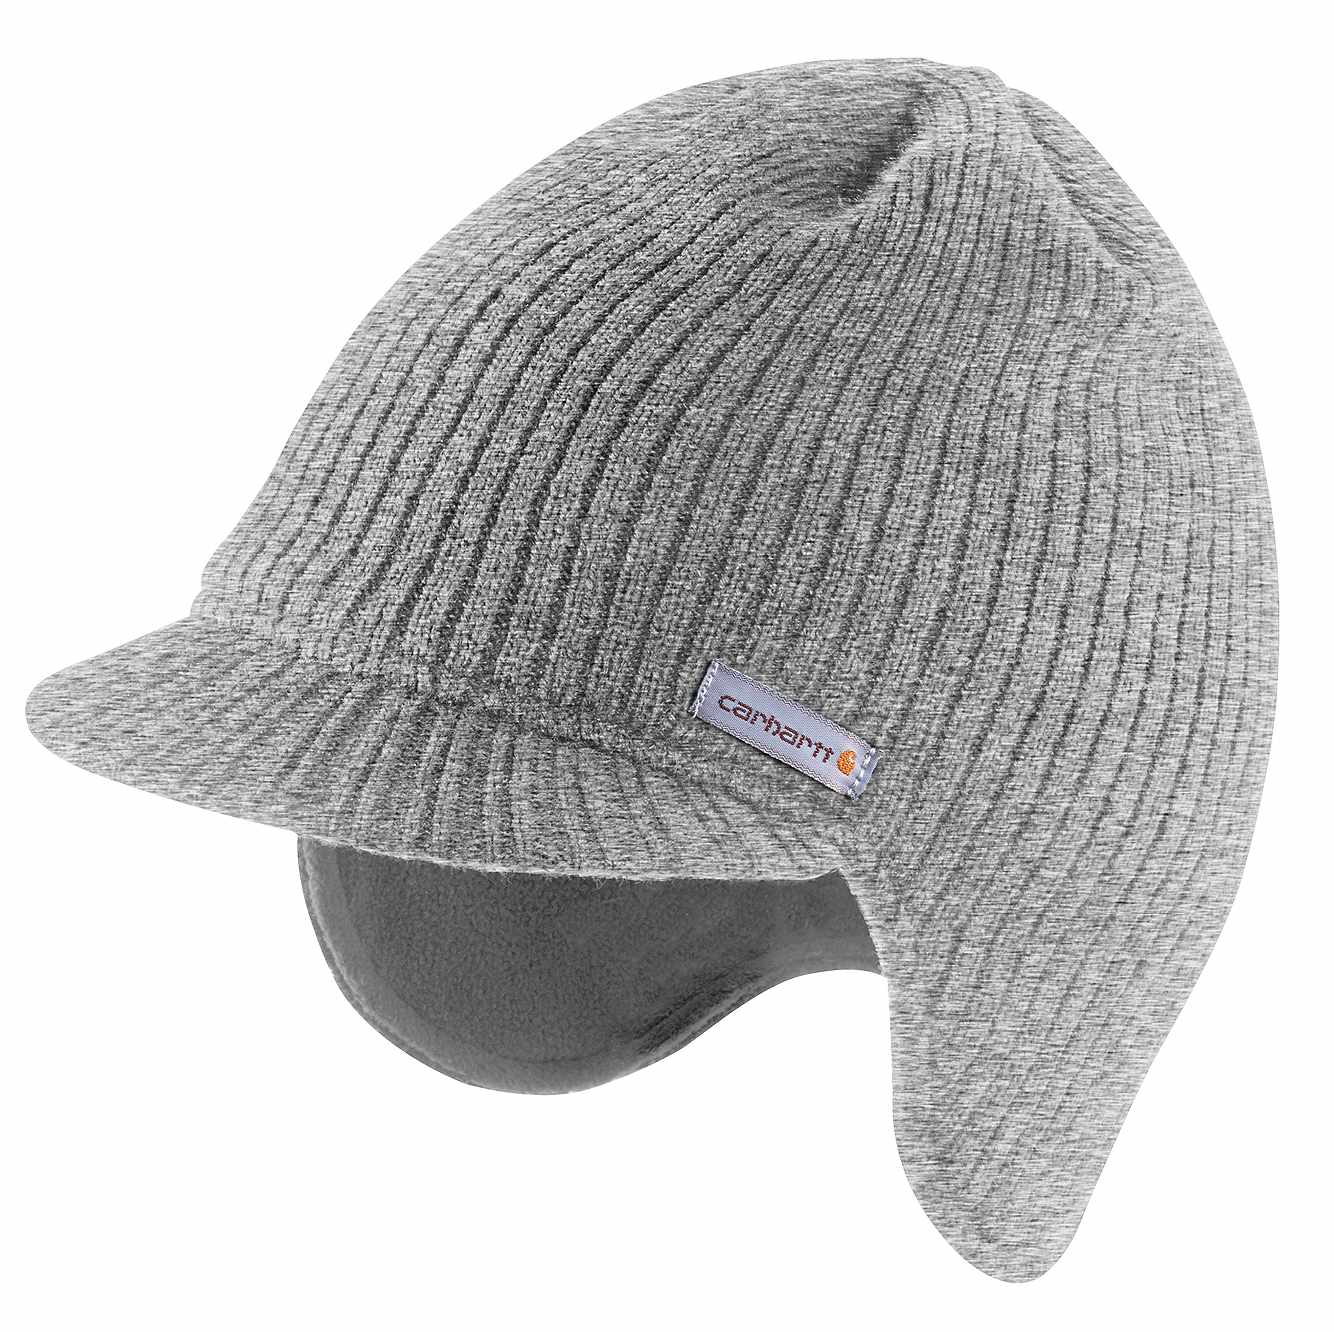 Picture of Carhartt® Knit Visor Hat in Heather Gray